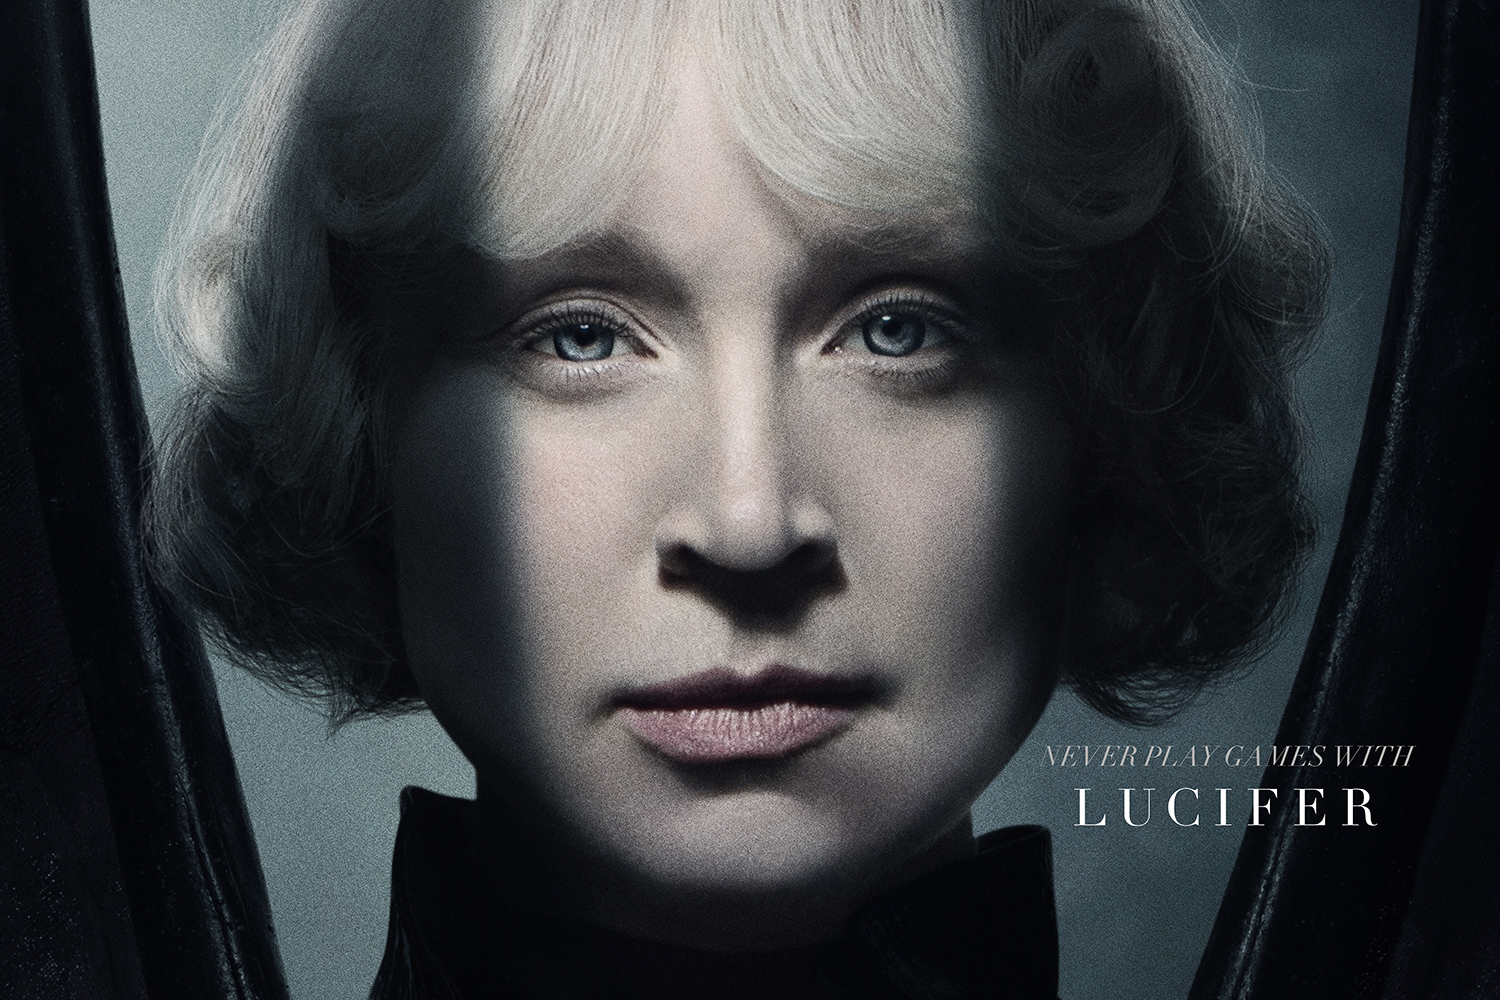 Gwendoline Christie as Lucifer — her white hair bobbed and waved like a biblical angel, her face framed by the shadow of black wings — in a promo image for Sandman on HBO Max.